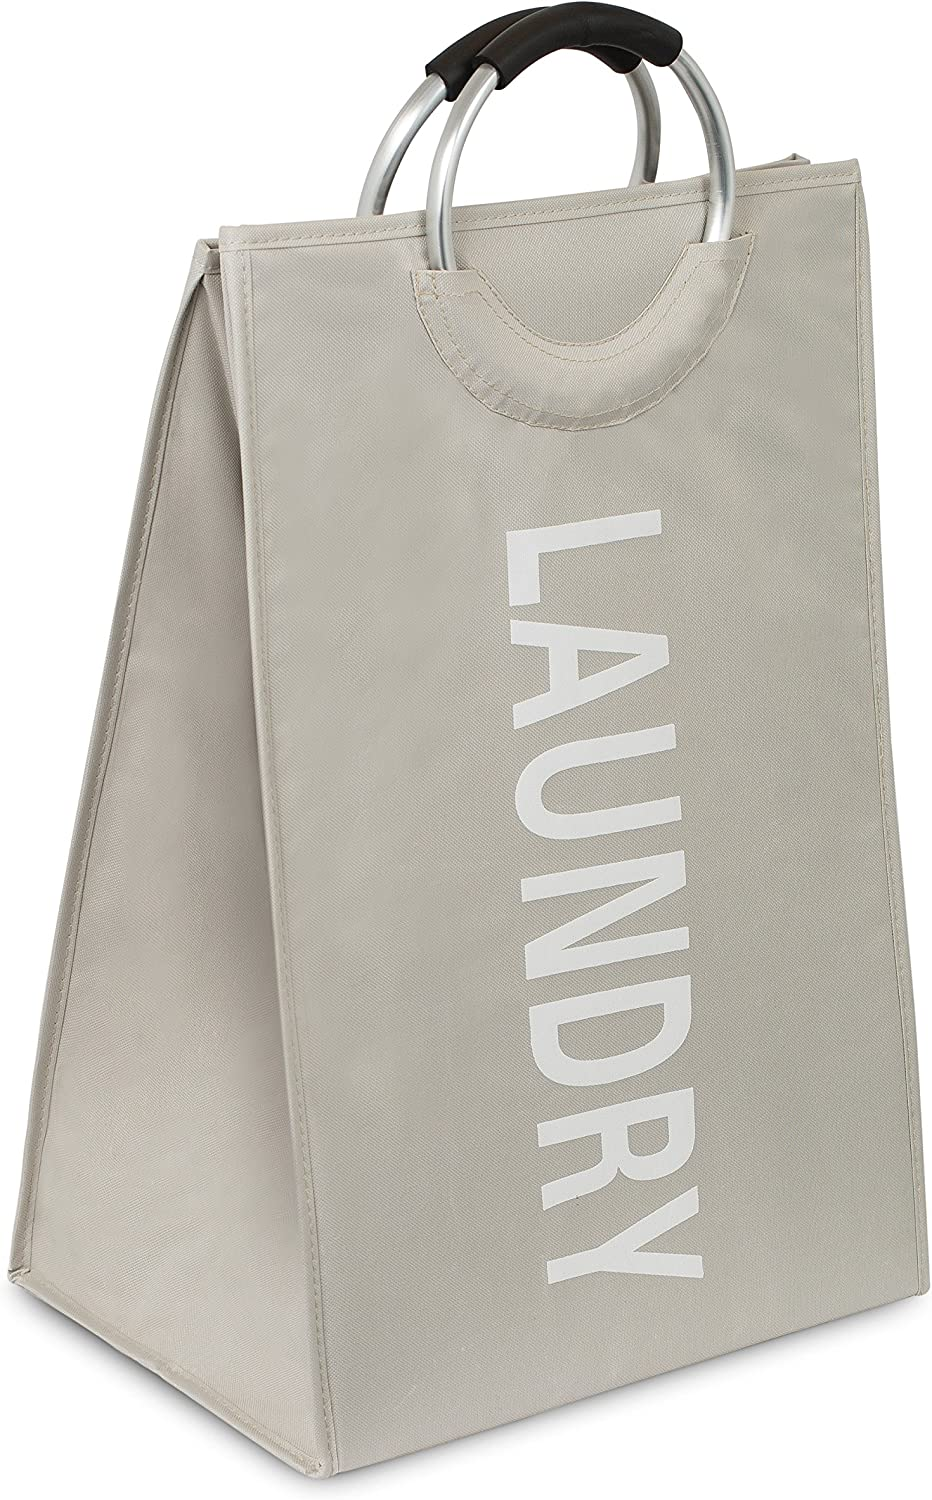 BIRDROCK HOME Oxford Laundry Bag - Clothes Storage - Sewn-in Frame - College Student Laundry Bin - Foldable - Cream